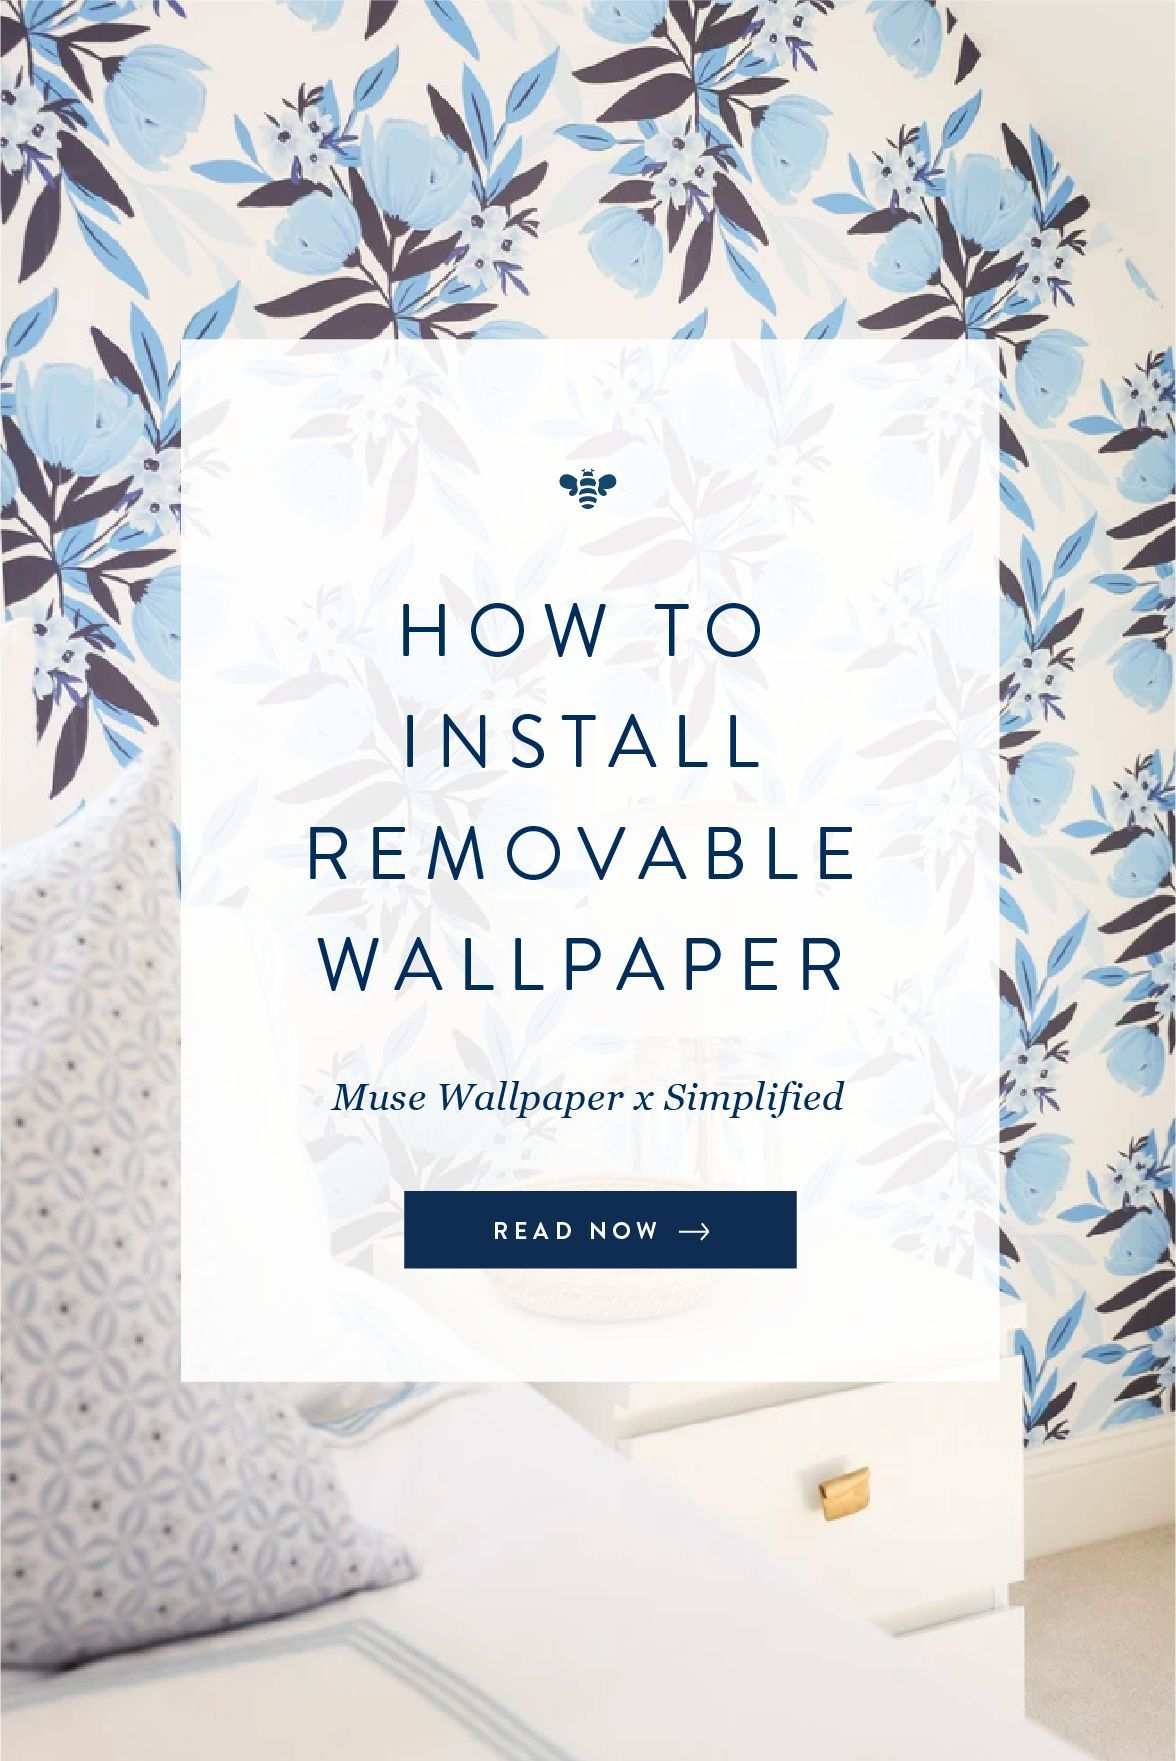 How To Install Removable Wallpaper Removable Wallpaper Comfort And Joy How To Remove